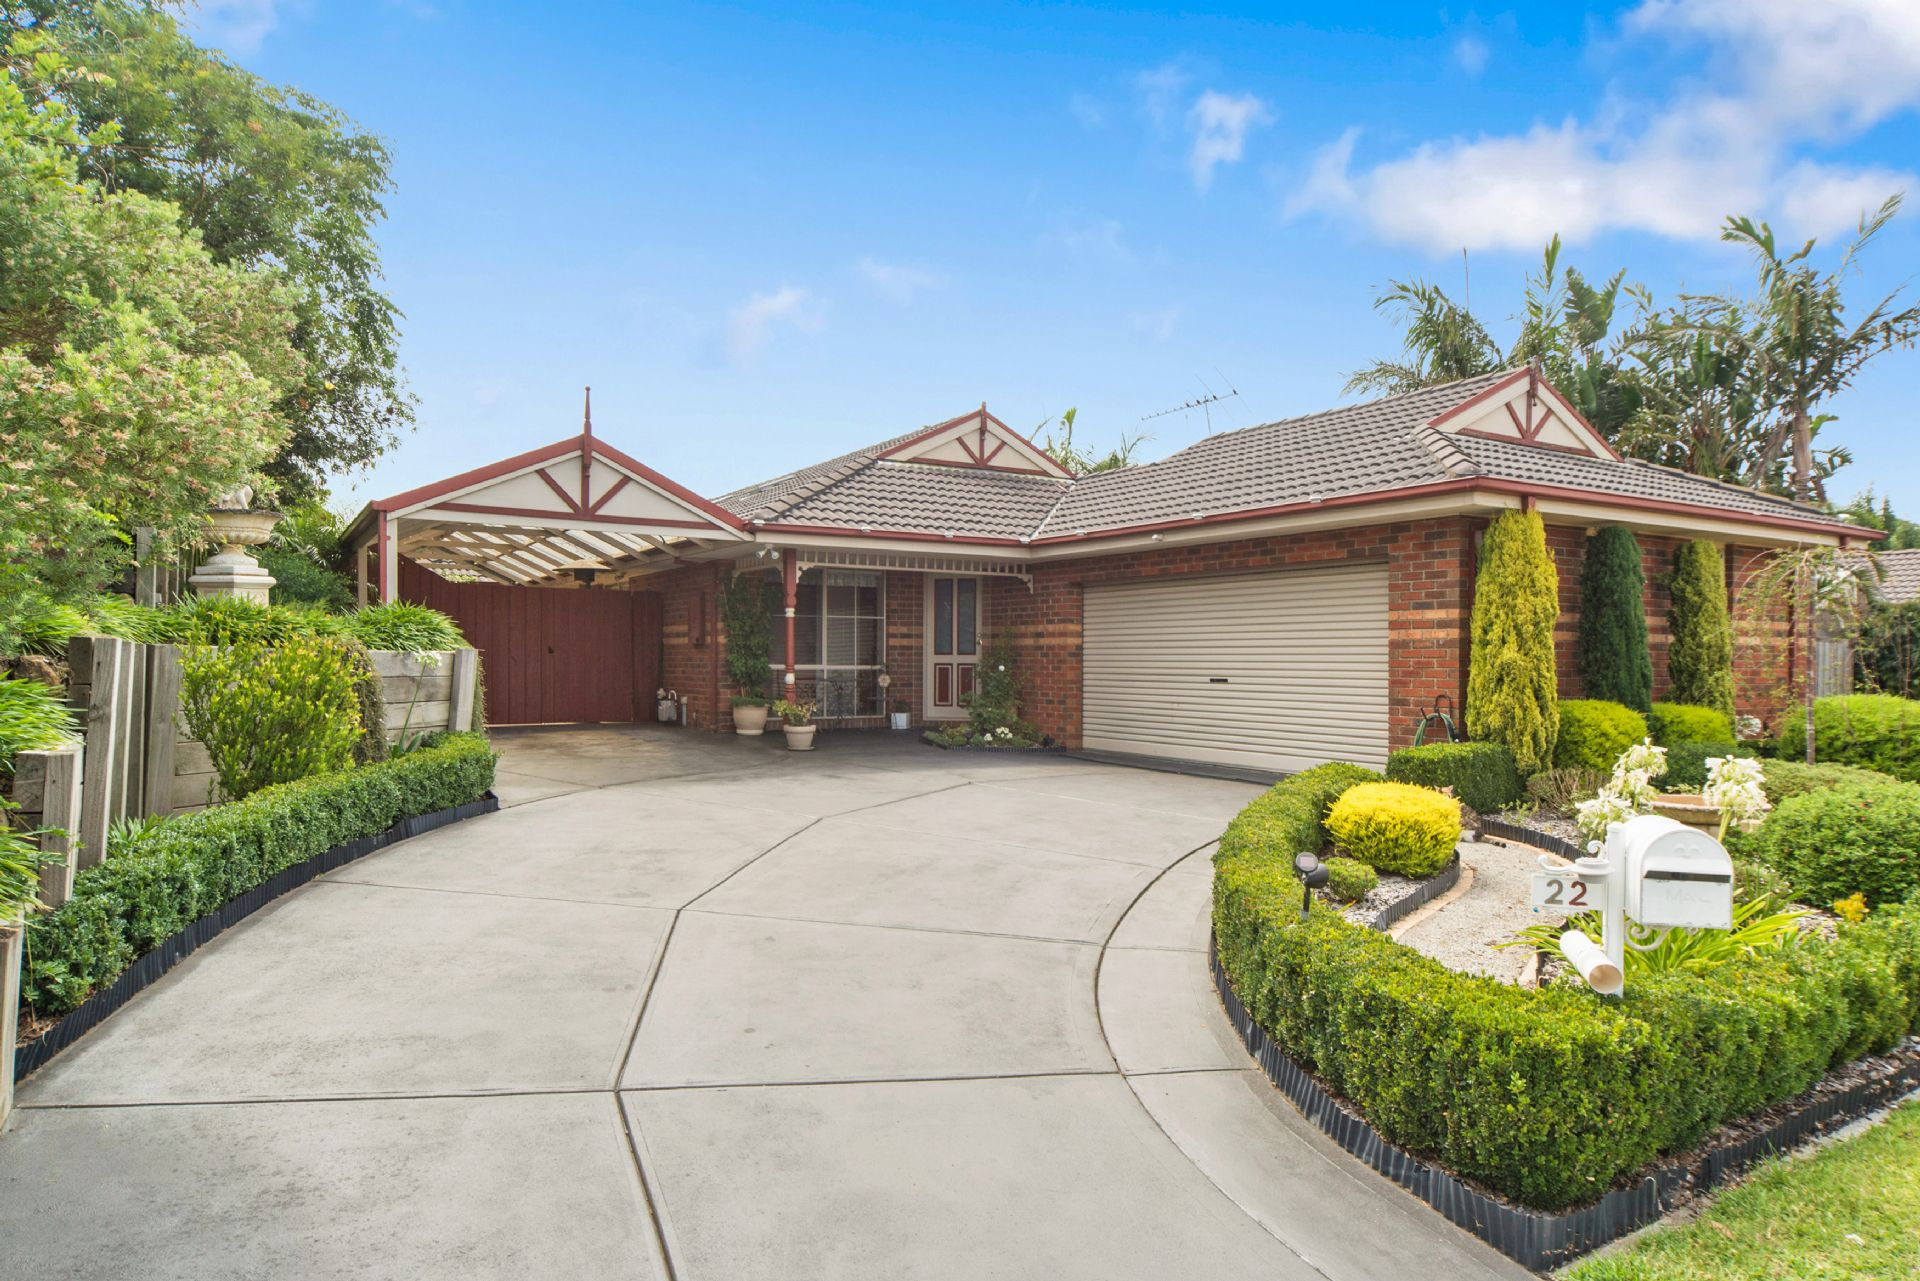 22 Bottlebrush Court, LANGWARRIN, VIC, 3910 - Image